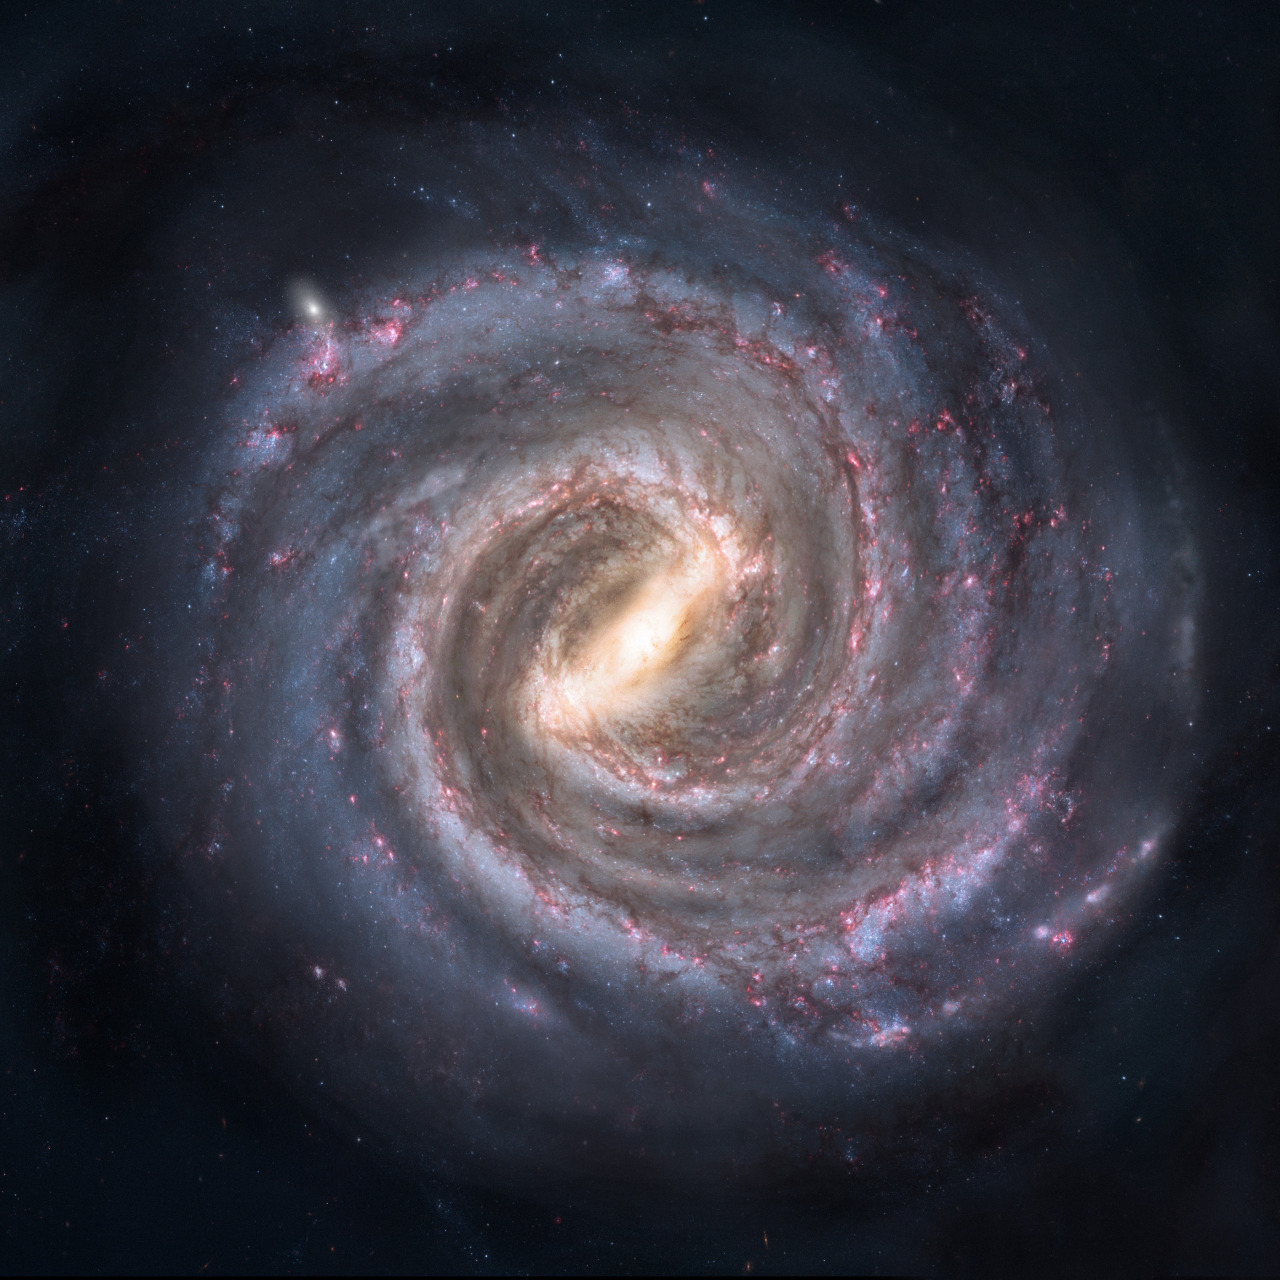 "Milky Way's Youngest Black Hole Was Formed By Doomed Rotating Star   Nasa may have discovered the youngest black hole in our solar system. There is a highly distorted cloud of gas and material which is all that is left of a supernova which occurred 1,000 years ago. It is located 26,000 light years away and the black hole at its centre is thought to be the youngest in our galaxy. It is unusual in that the supernova was not symmetrical. Instead material near the poles of the doomed rotating star was ejected faster than that at its equator. ""W49B is the first of its kind to be discovered in the galaxy,"" said Laura Lopez, who led the study at the Massachusetts Institute of Technology. ""It appears its parent star ended its life in a way that most others don't."""